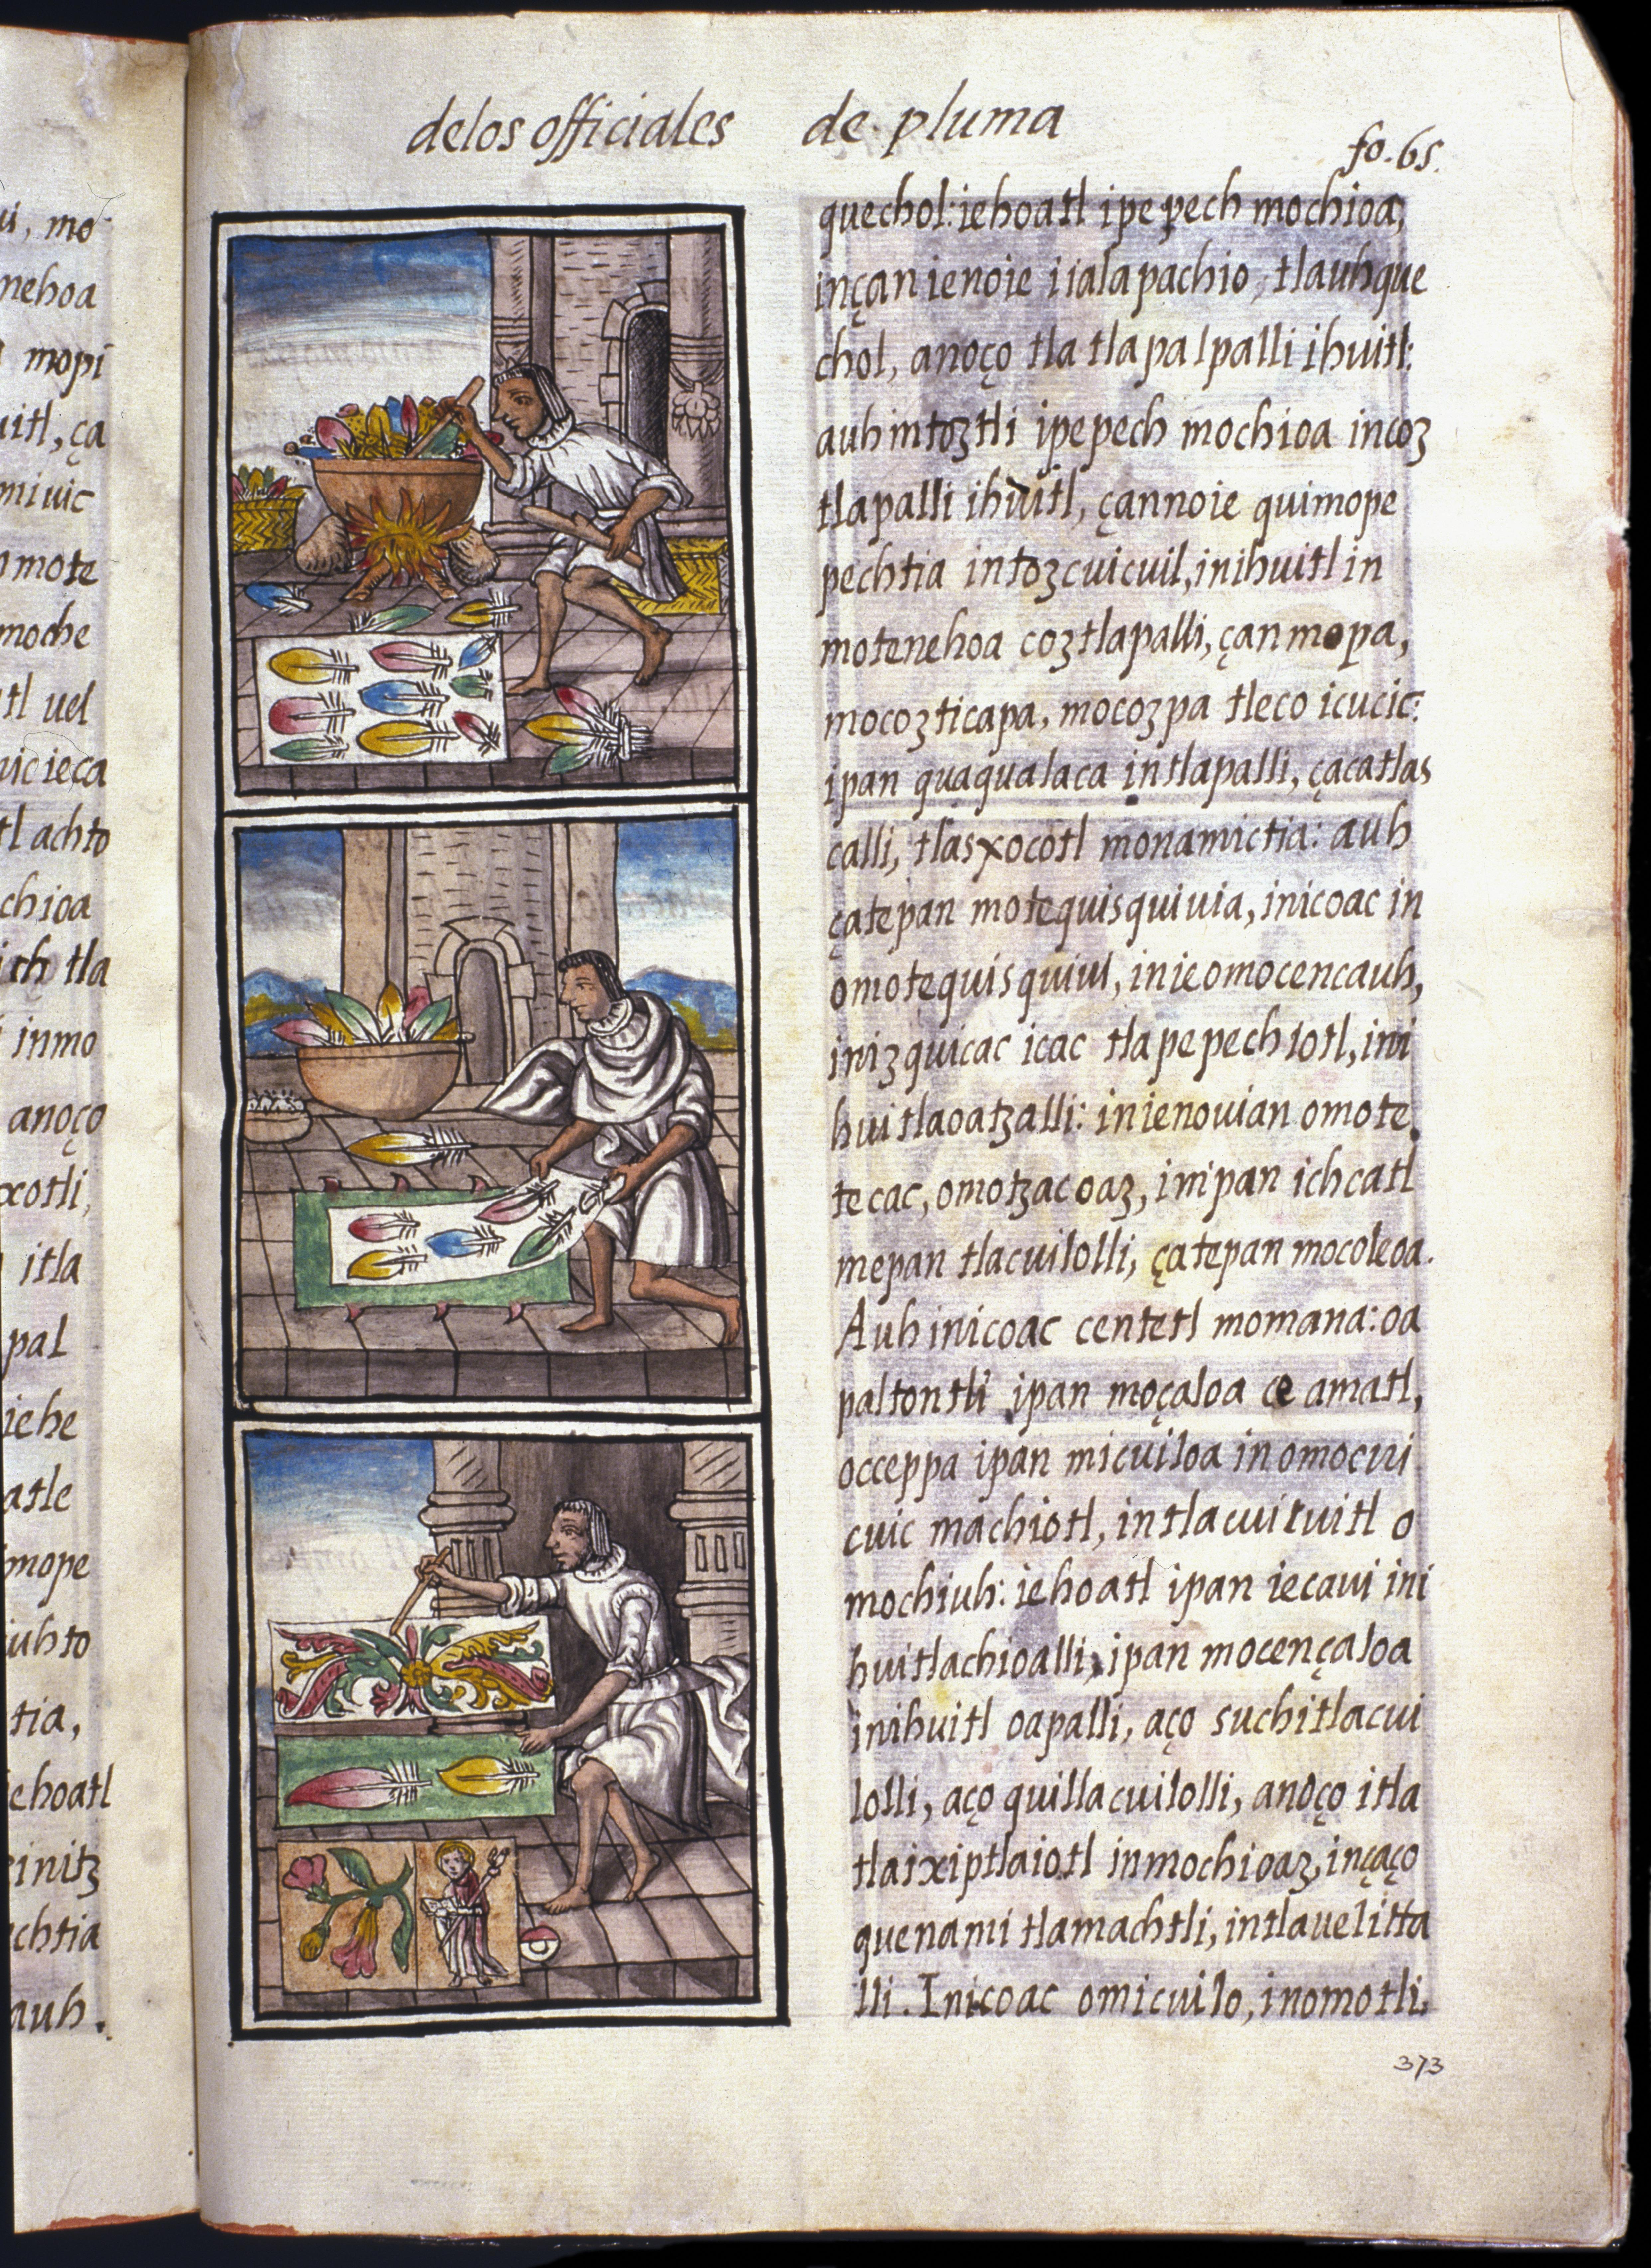 Image of a page from an illuminated manuscript showing three scenes of Aztex featherwork in the left hand column.